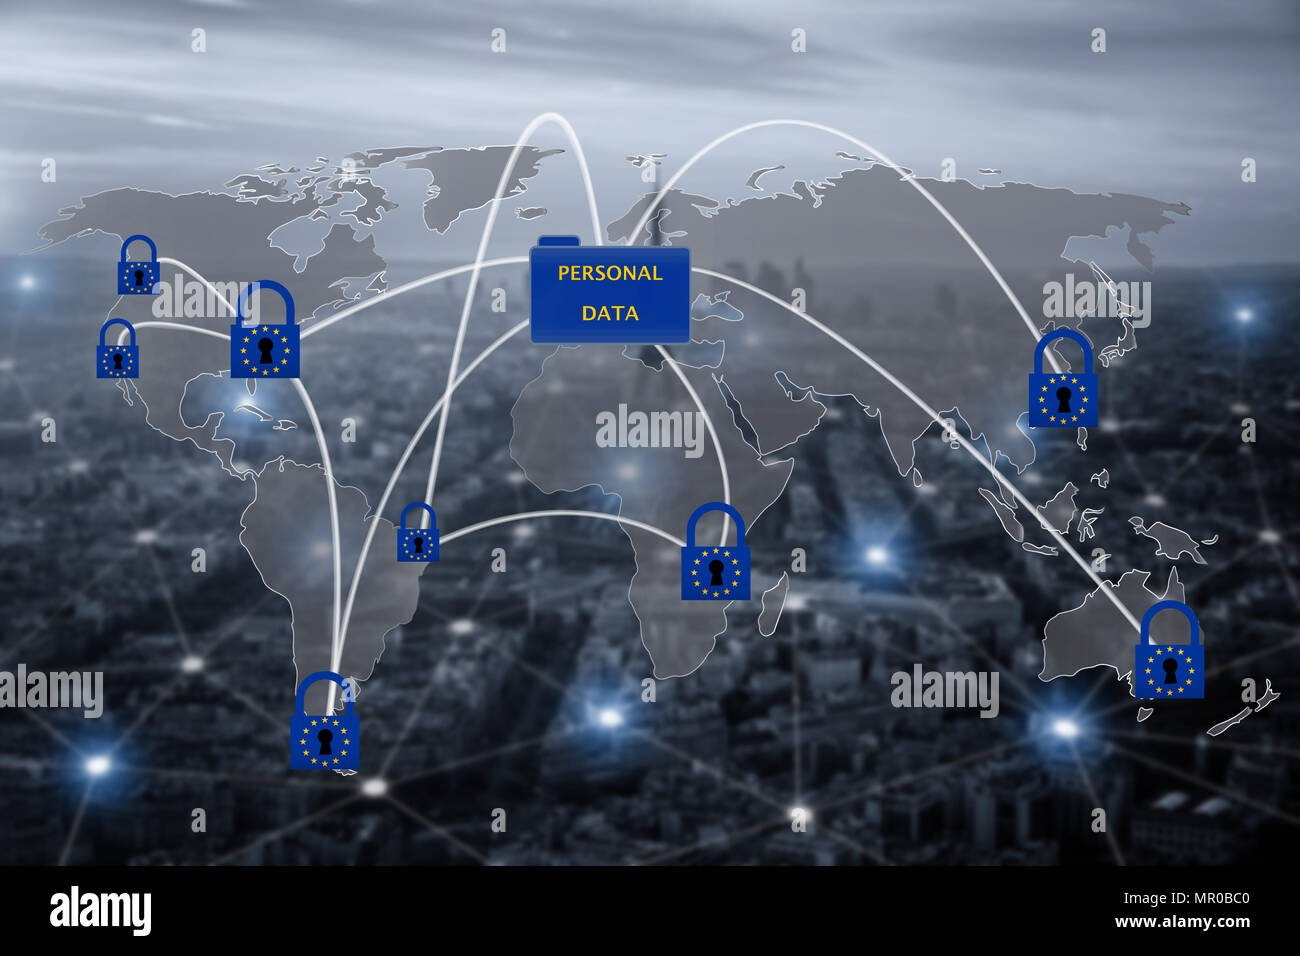 Padlock over EU map, symbolizing the EU General Data Protection Regulation or GDPR. Designed to harmonize data privacy laws across Europe. - Stock Image